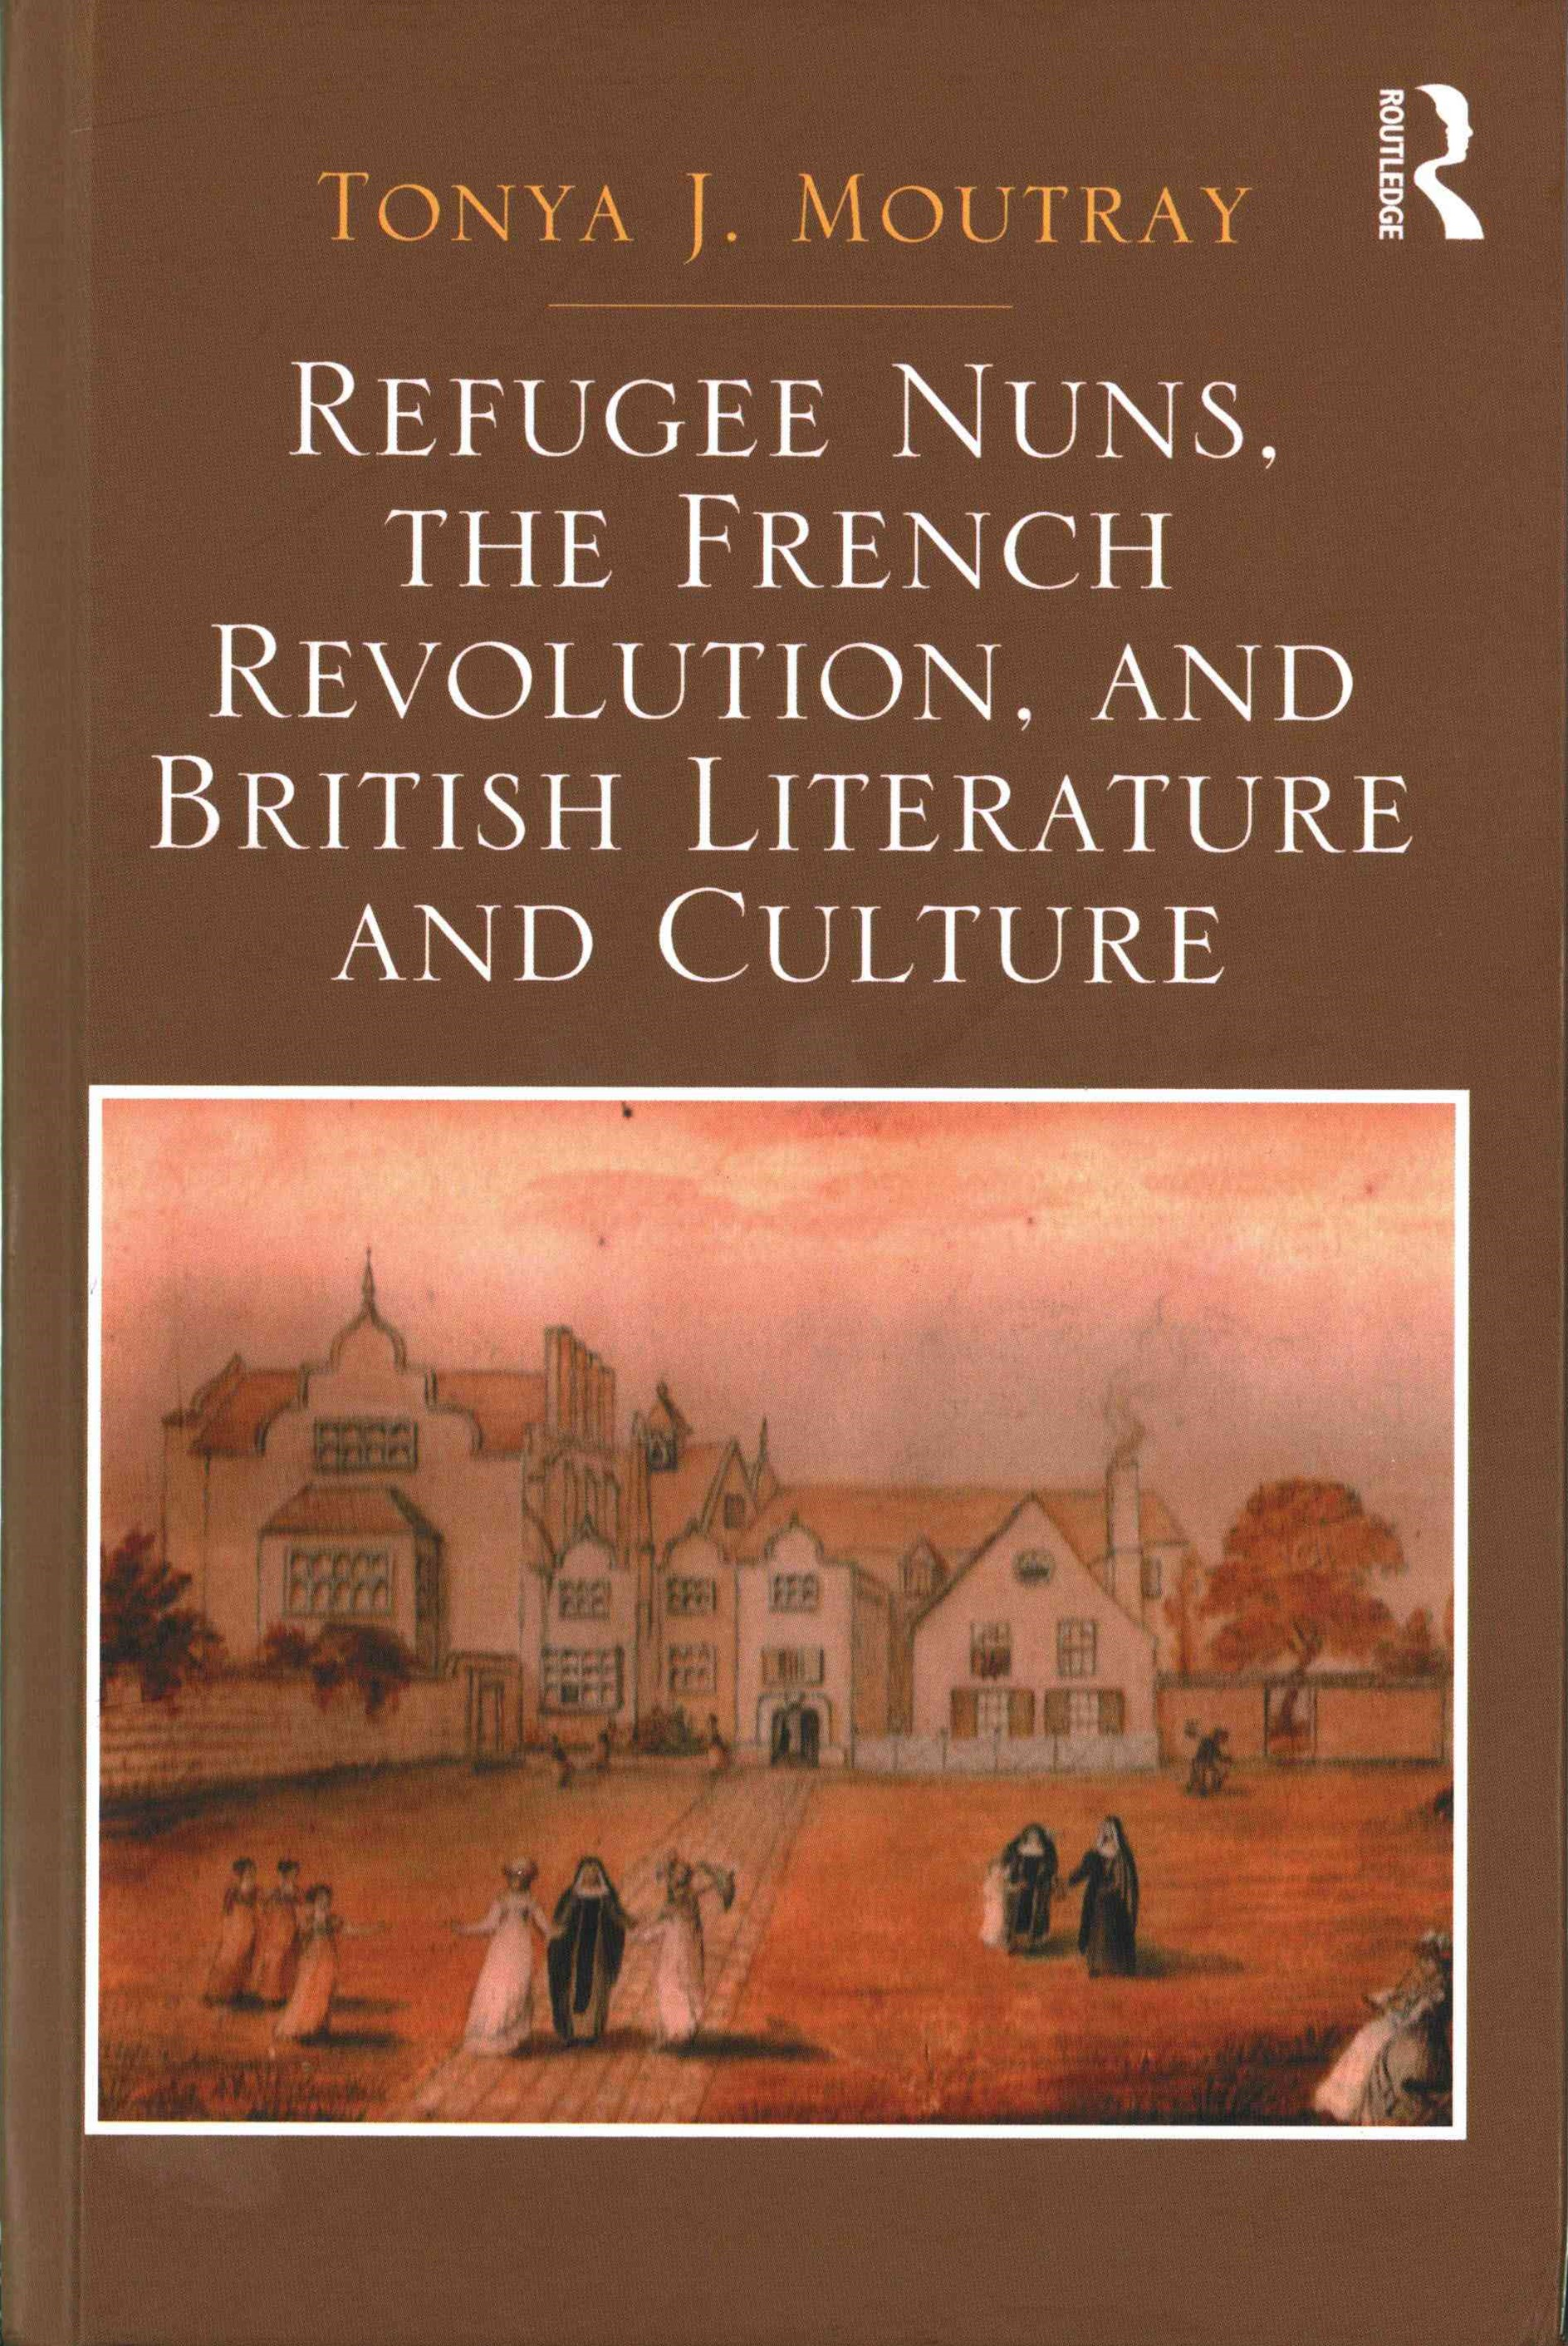 Refugee Nuns, the French Revolution, and British Literature and Culture